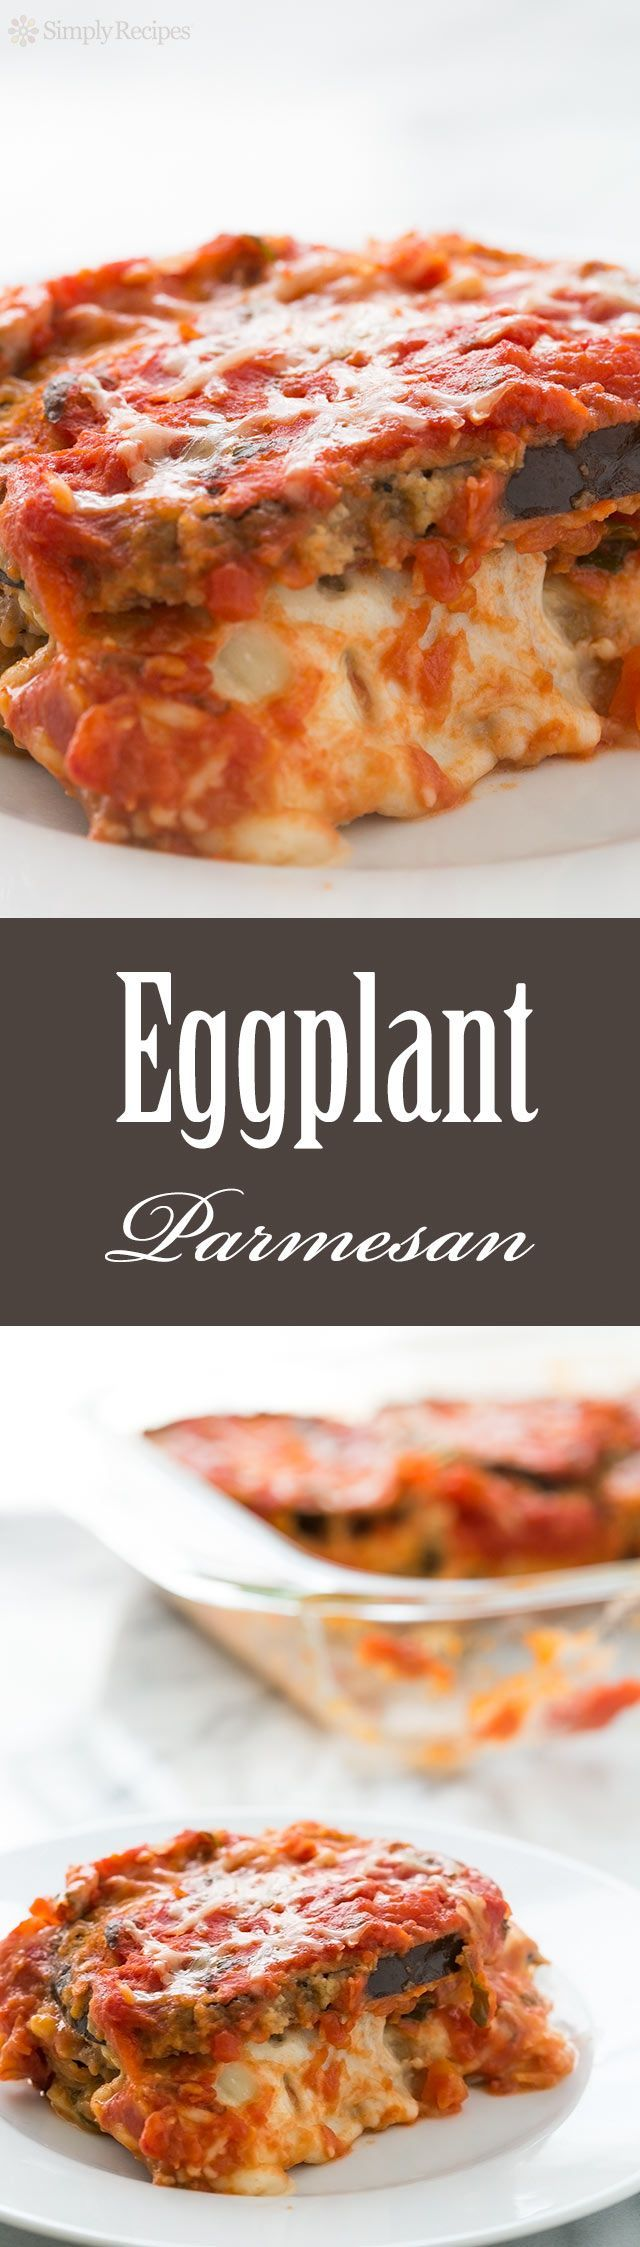 Best Eggplant Parmesan Casserole! With breaded eggplant slices layered with Mozzarella, Parmesan, basil, and tomato sauce. #Vegetarian #Italian On SimplyRecipes.com